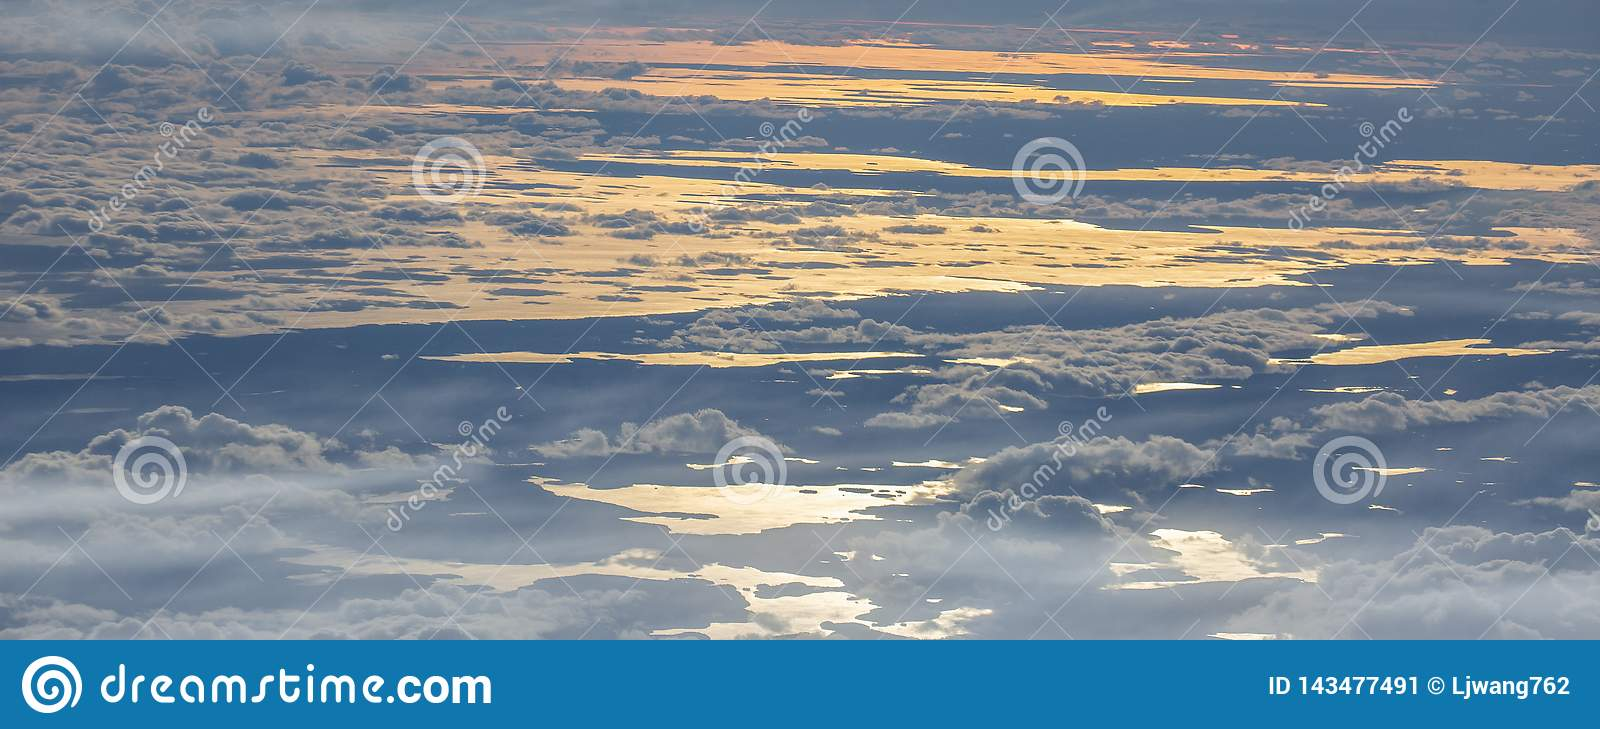 6Take an aerial view of the ice and sunrise over the bering strait.(1)